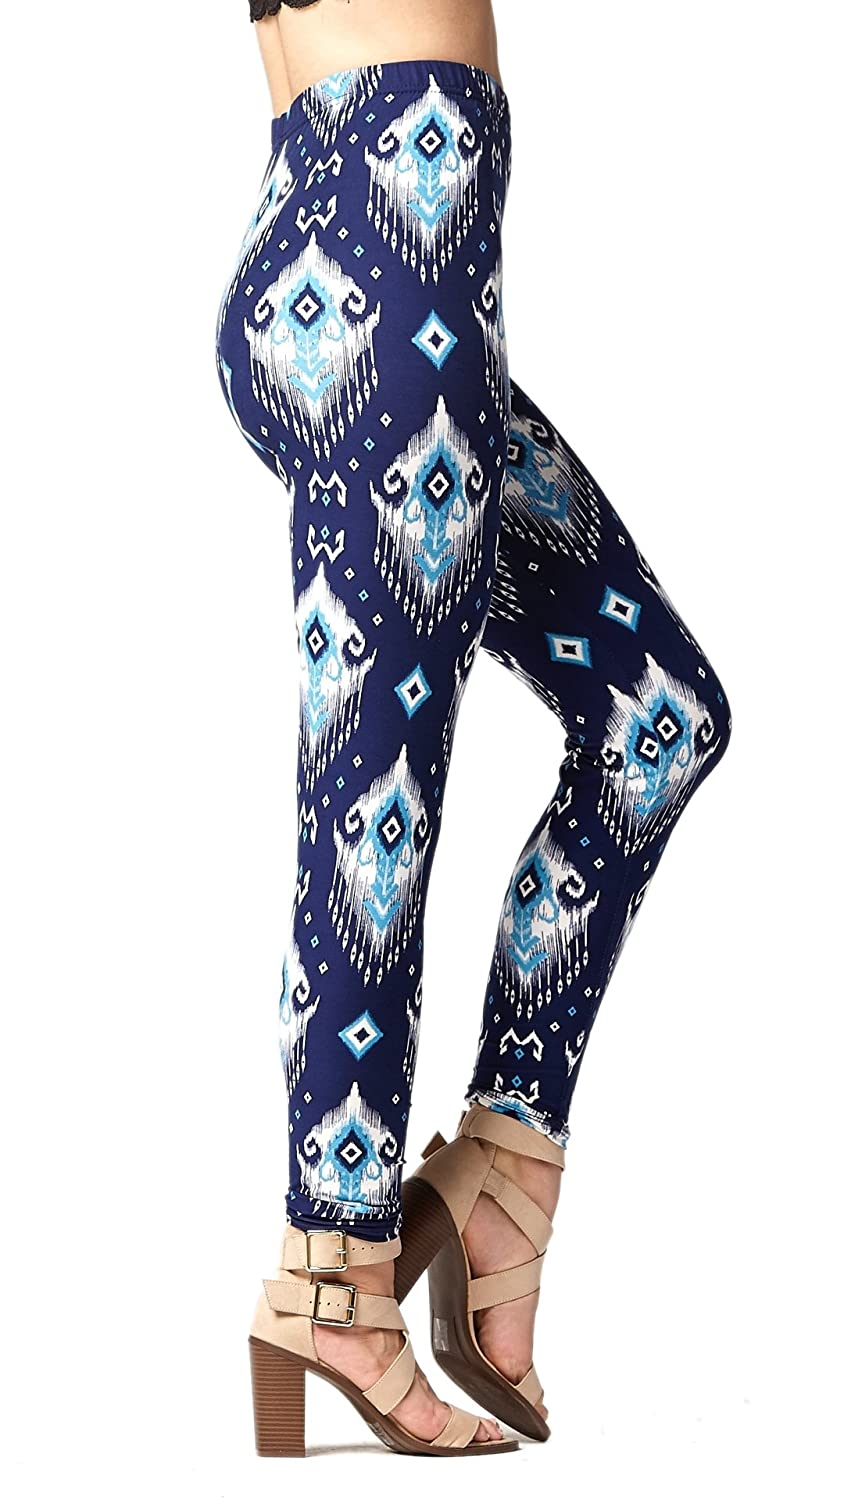 3aff045d0672dd Conceited Premium Ultra Soft High Waisted Leggings for Women - Regular and  Plus Size - Many Colors and Prints at Amazon Women's Clothing store: